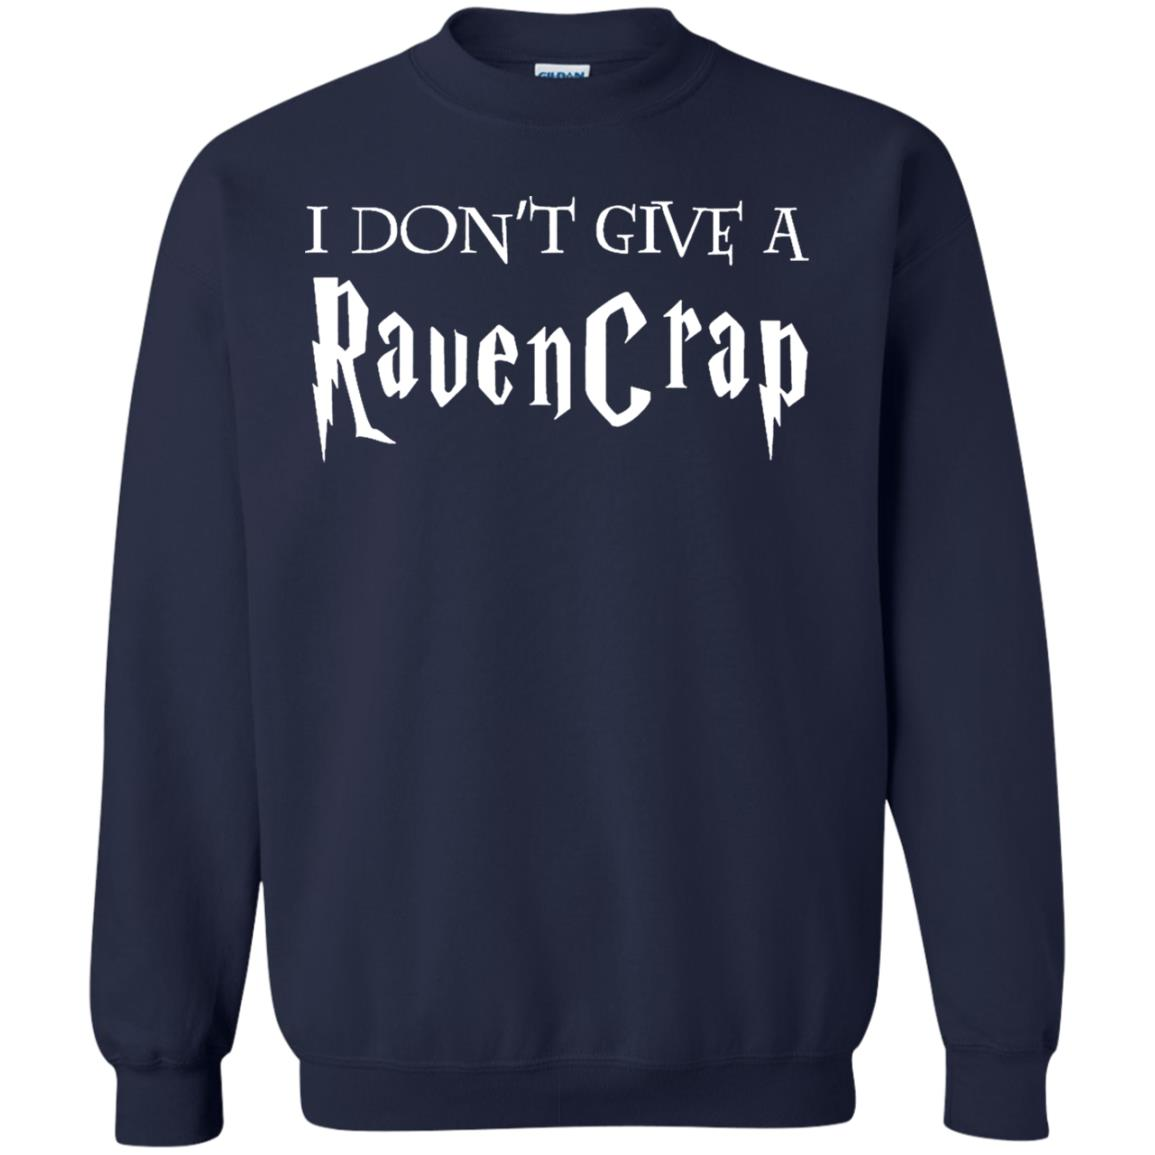 image 693 - Harry Potter: I don't give a Ravencrap shirt & sweater